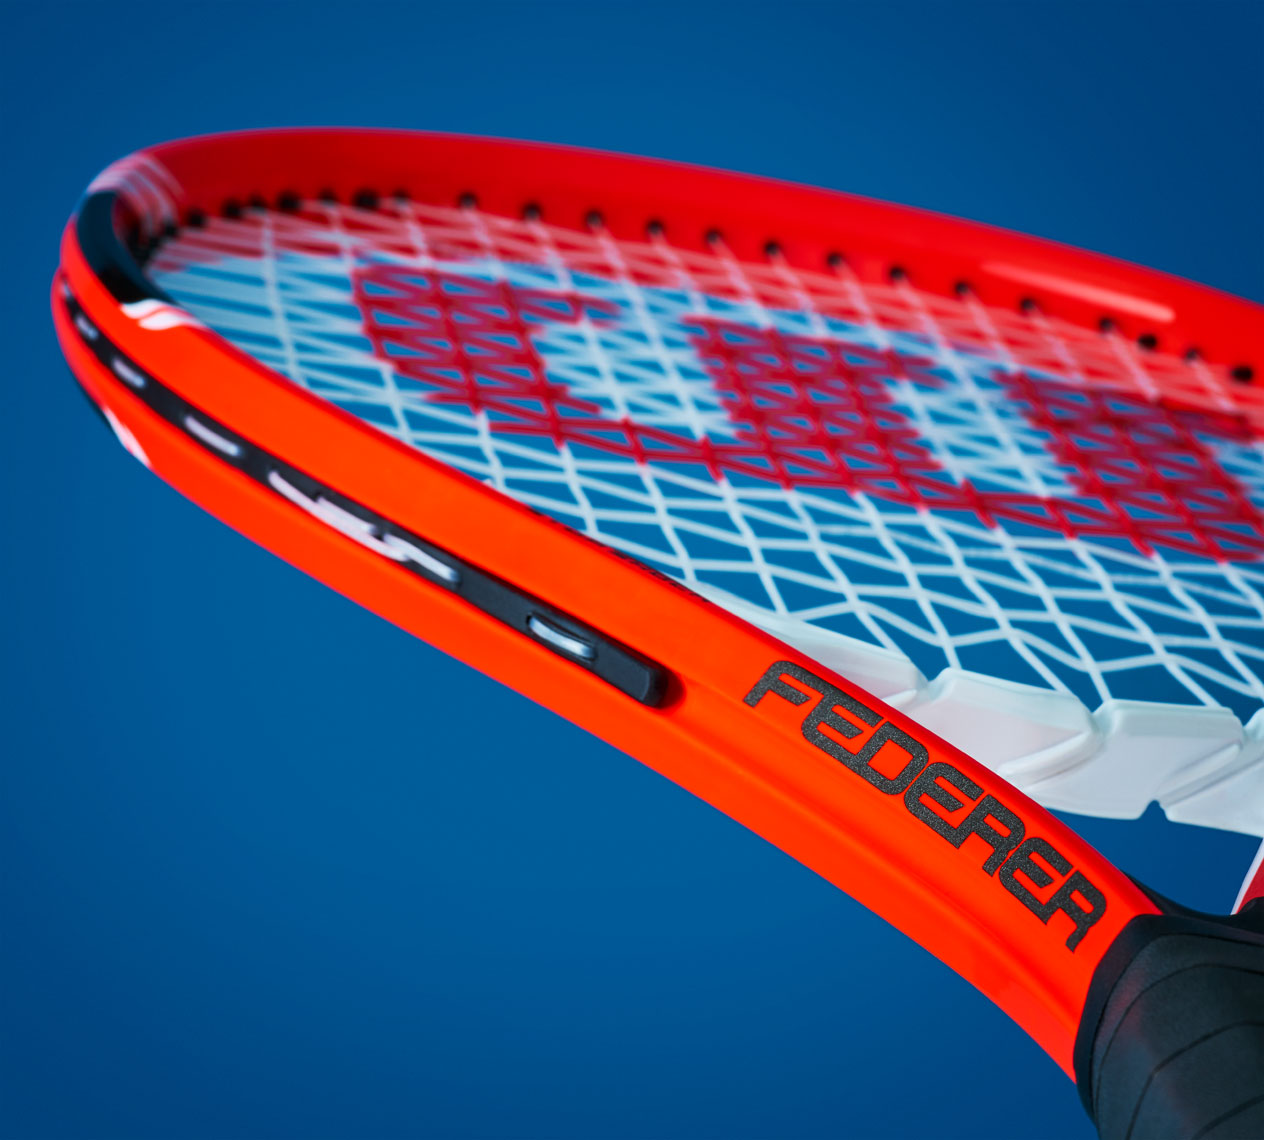 Dan Schrock Product Photographer Gear Wilson Federer Adult Tennis Rackets Red on Blue